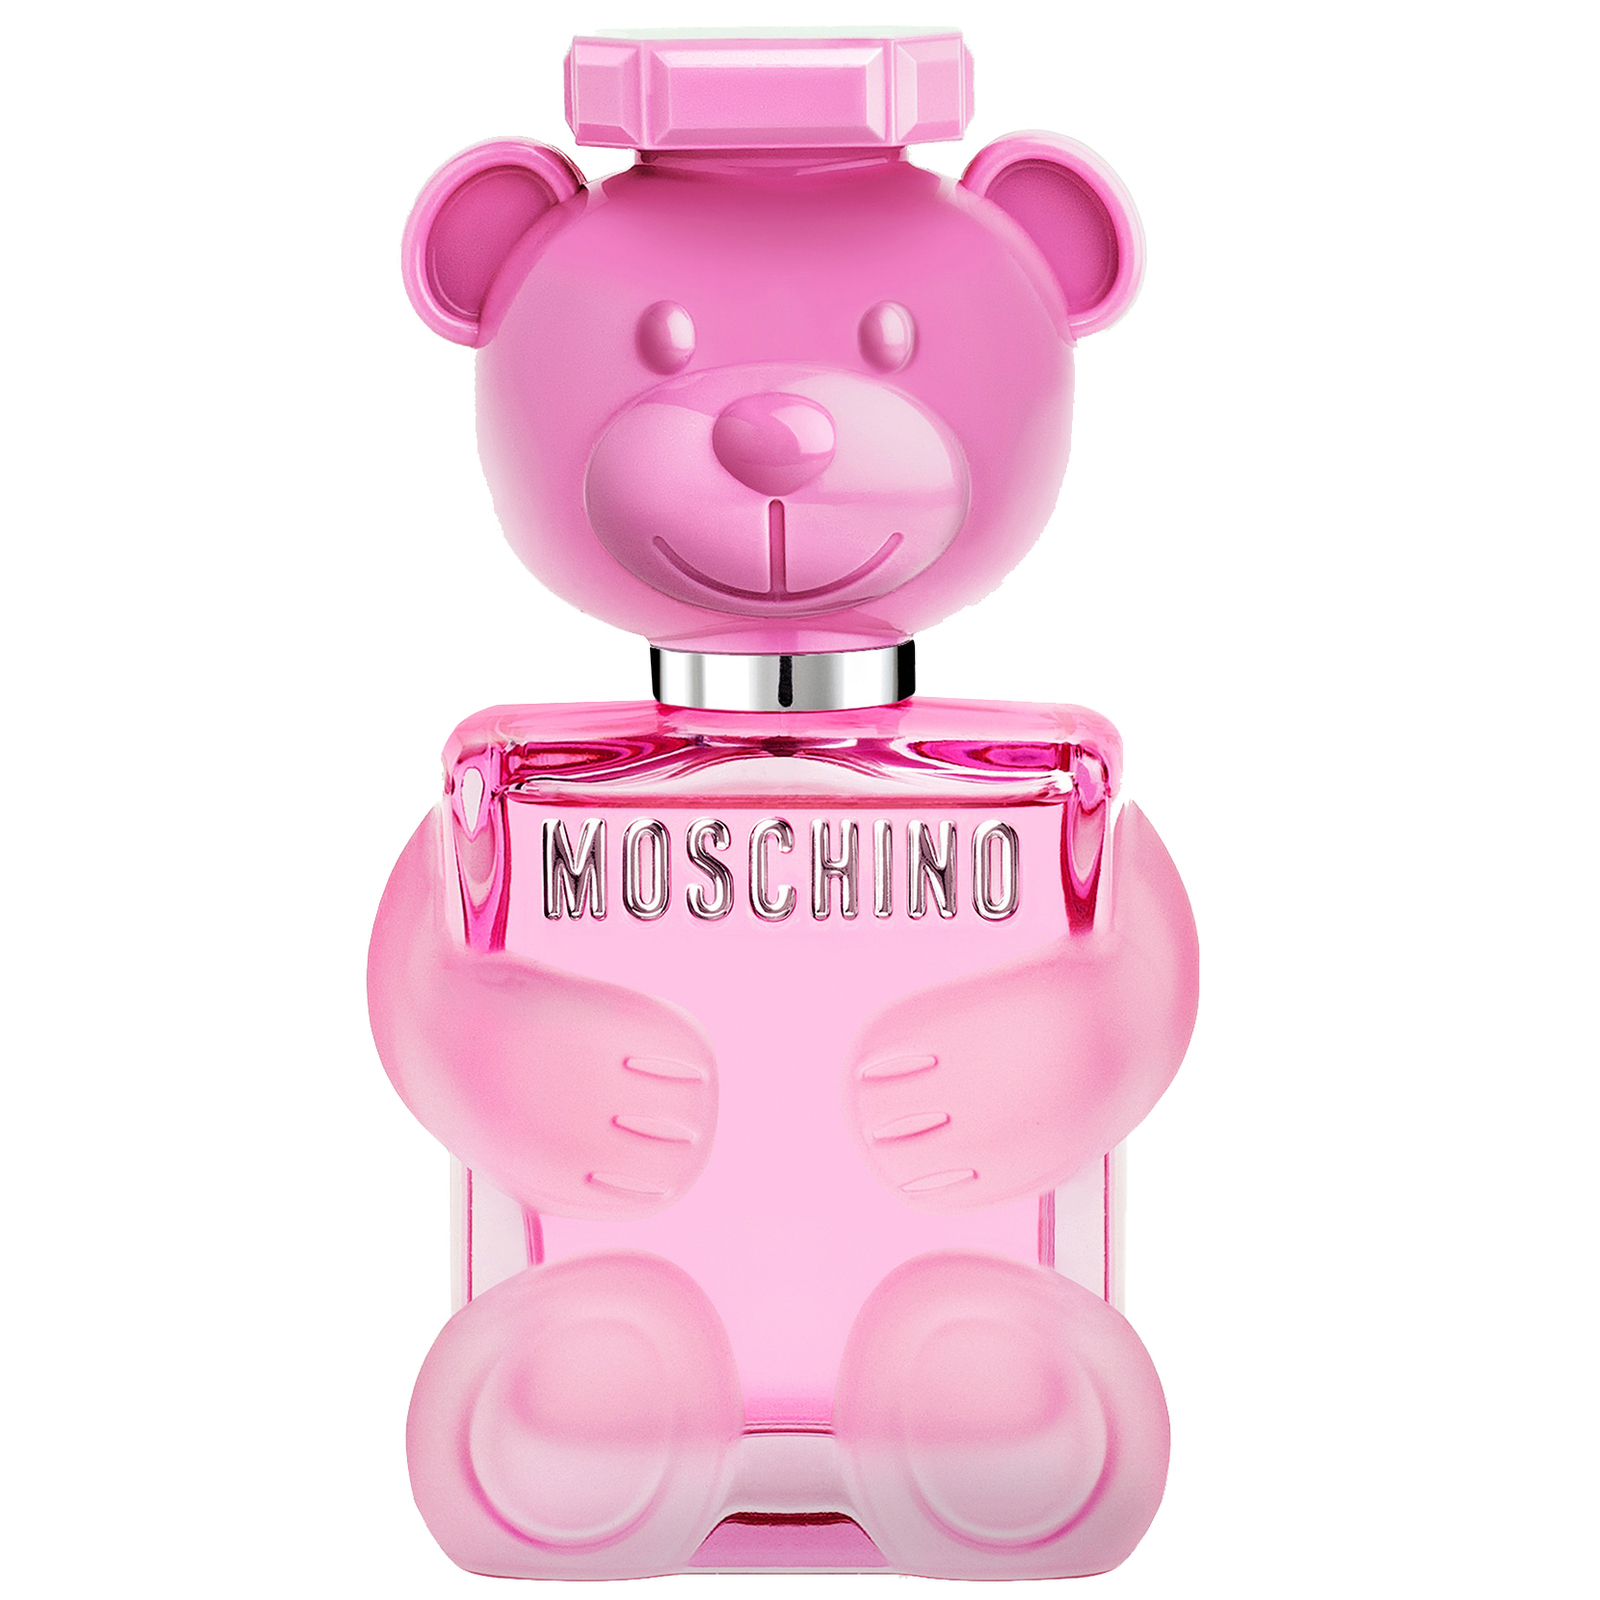 Moschino Toy2 Bubblegum Eau de Toilette Spray 100ml